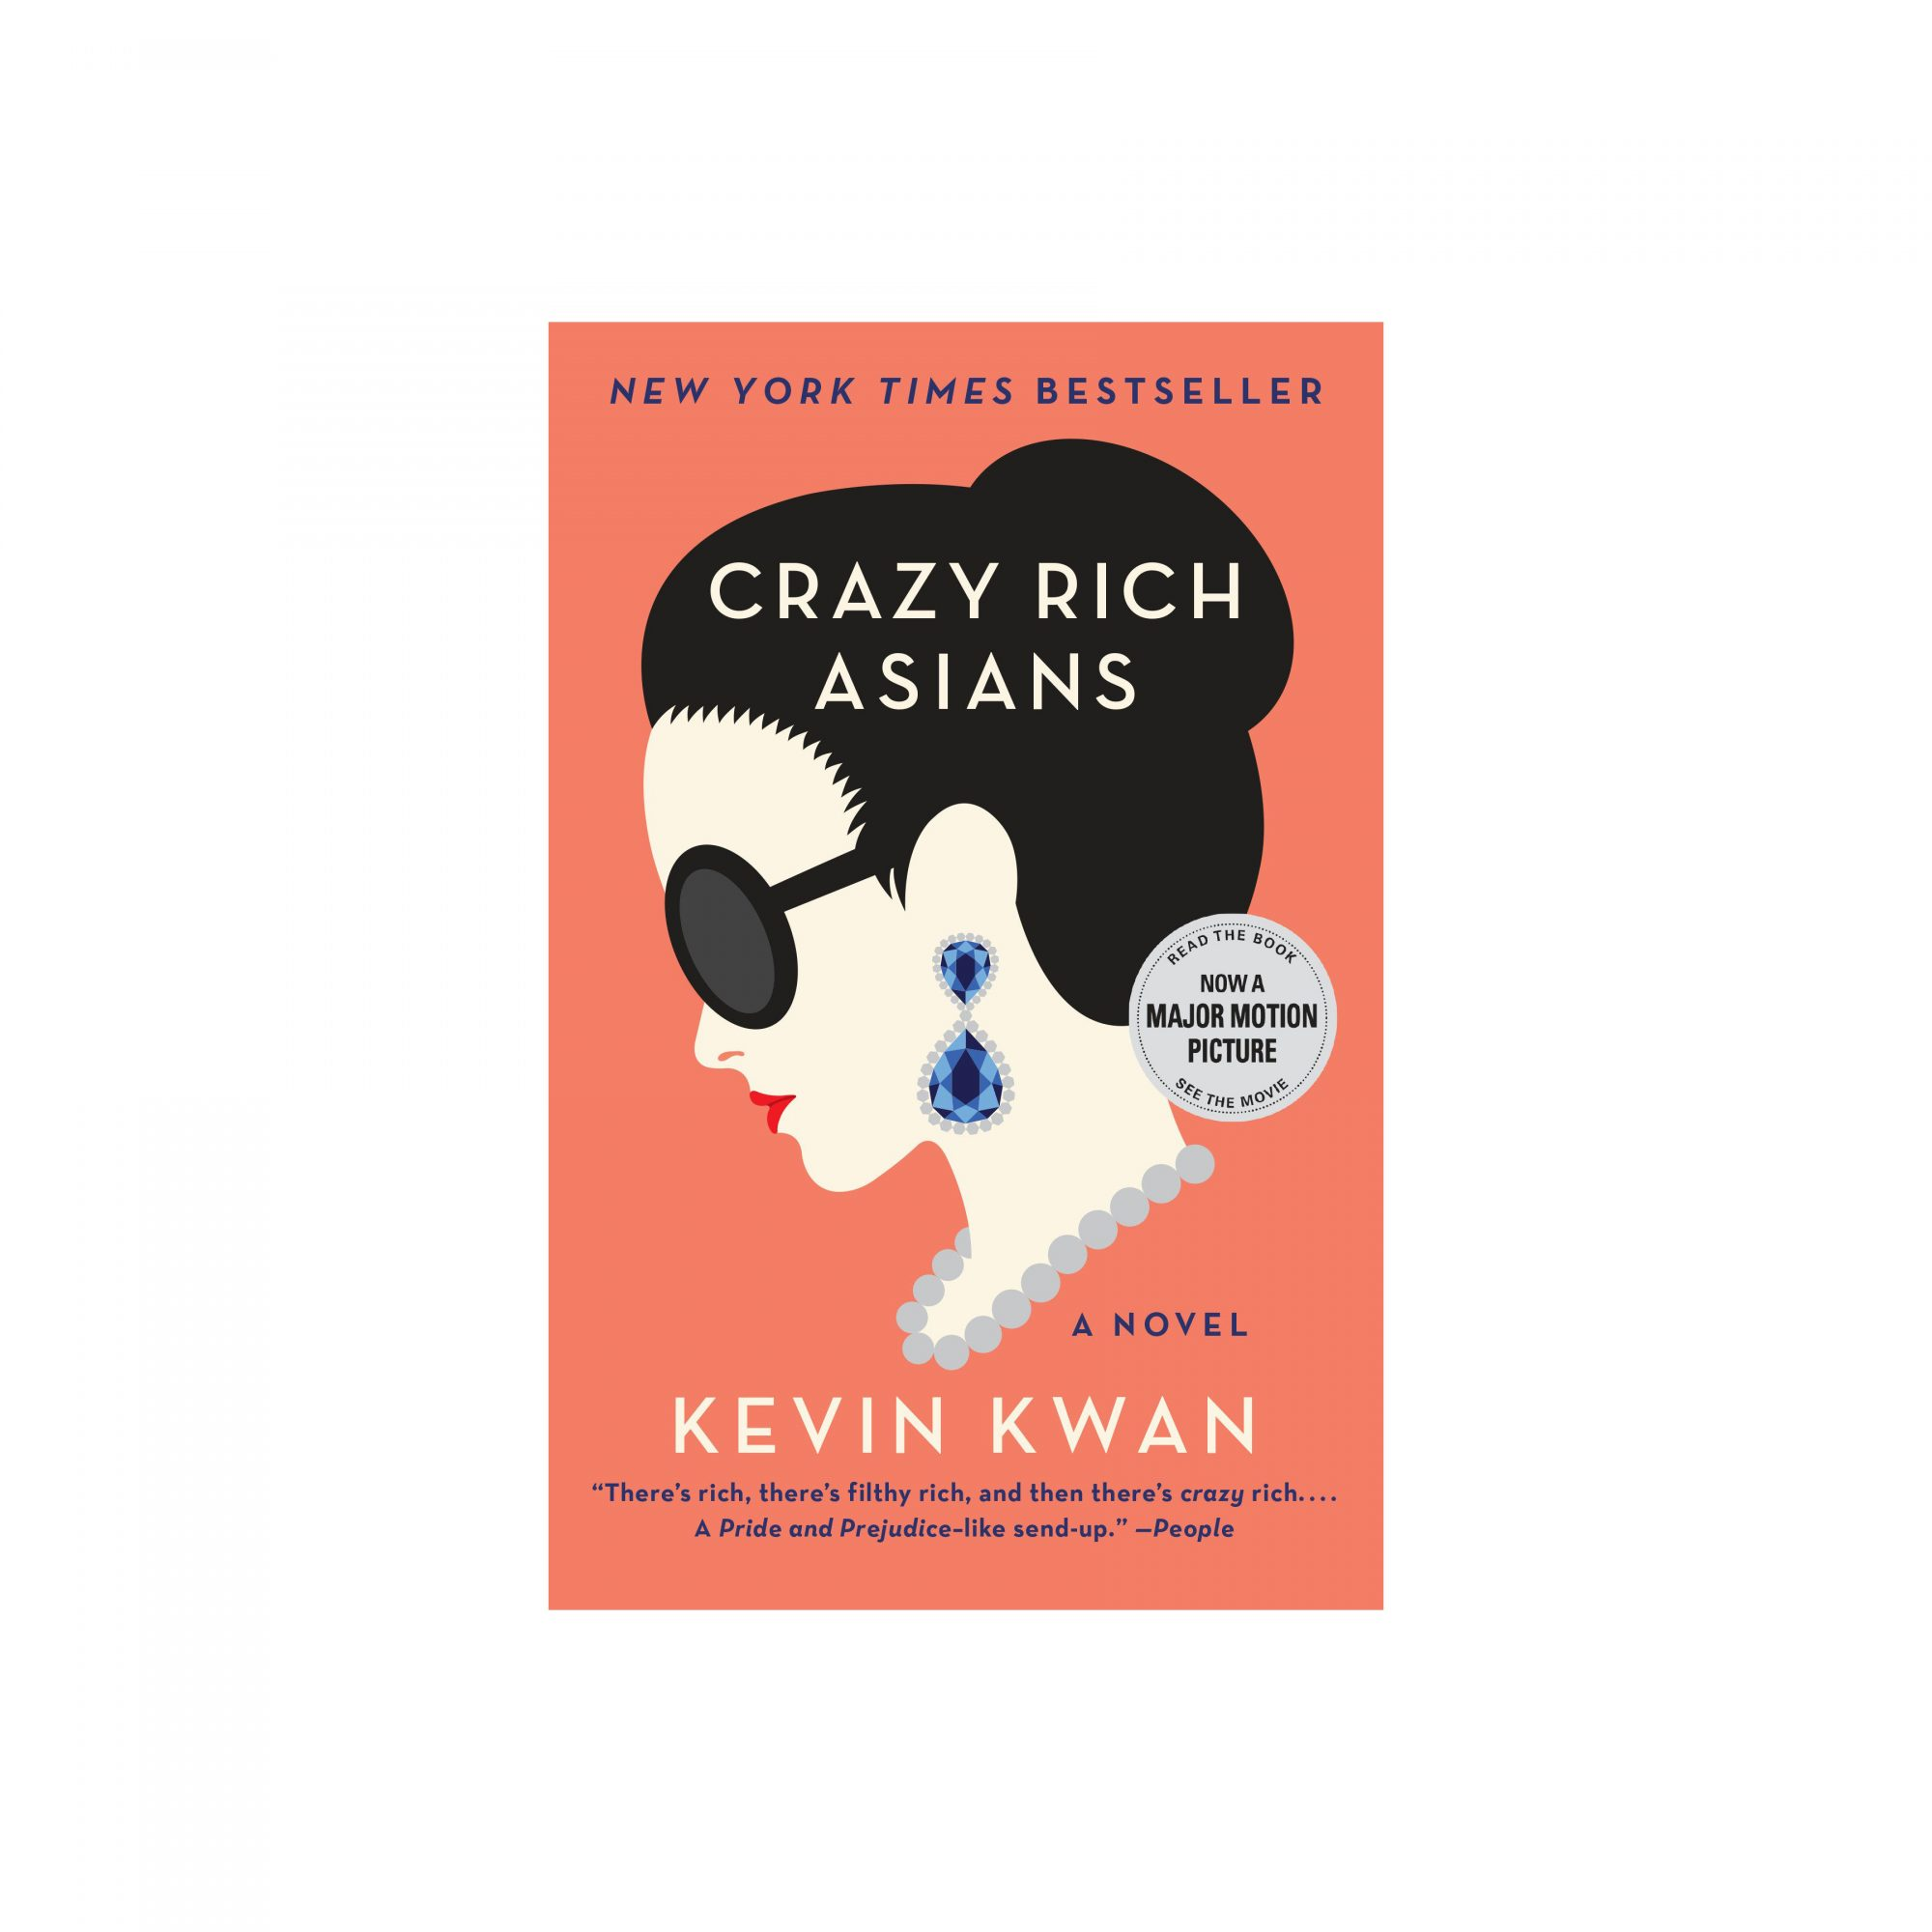 Airplane Books Crazy Rich Asians, by Kevin Kwan